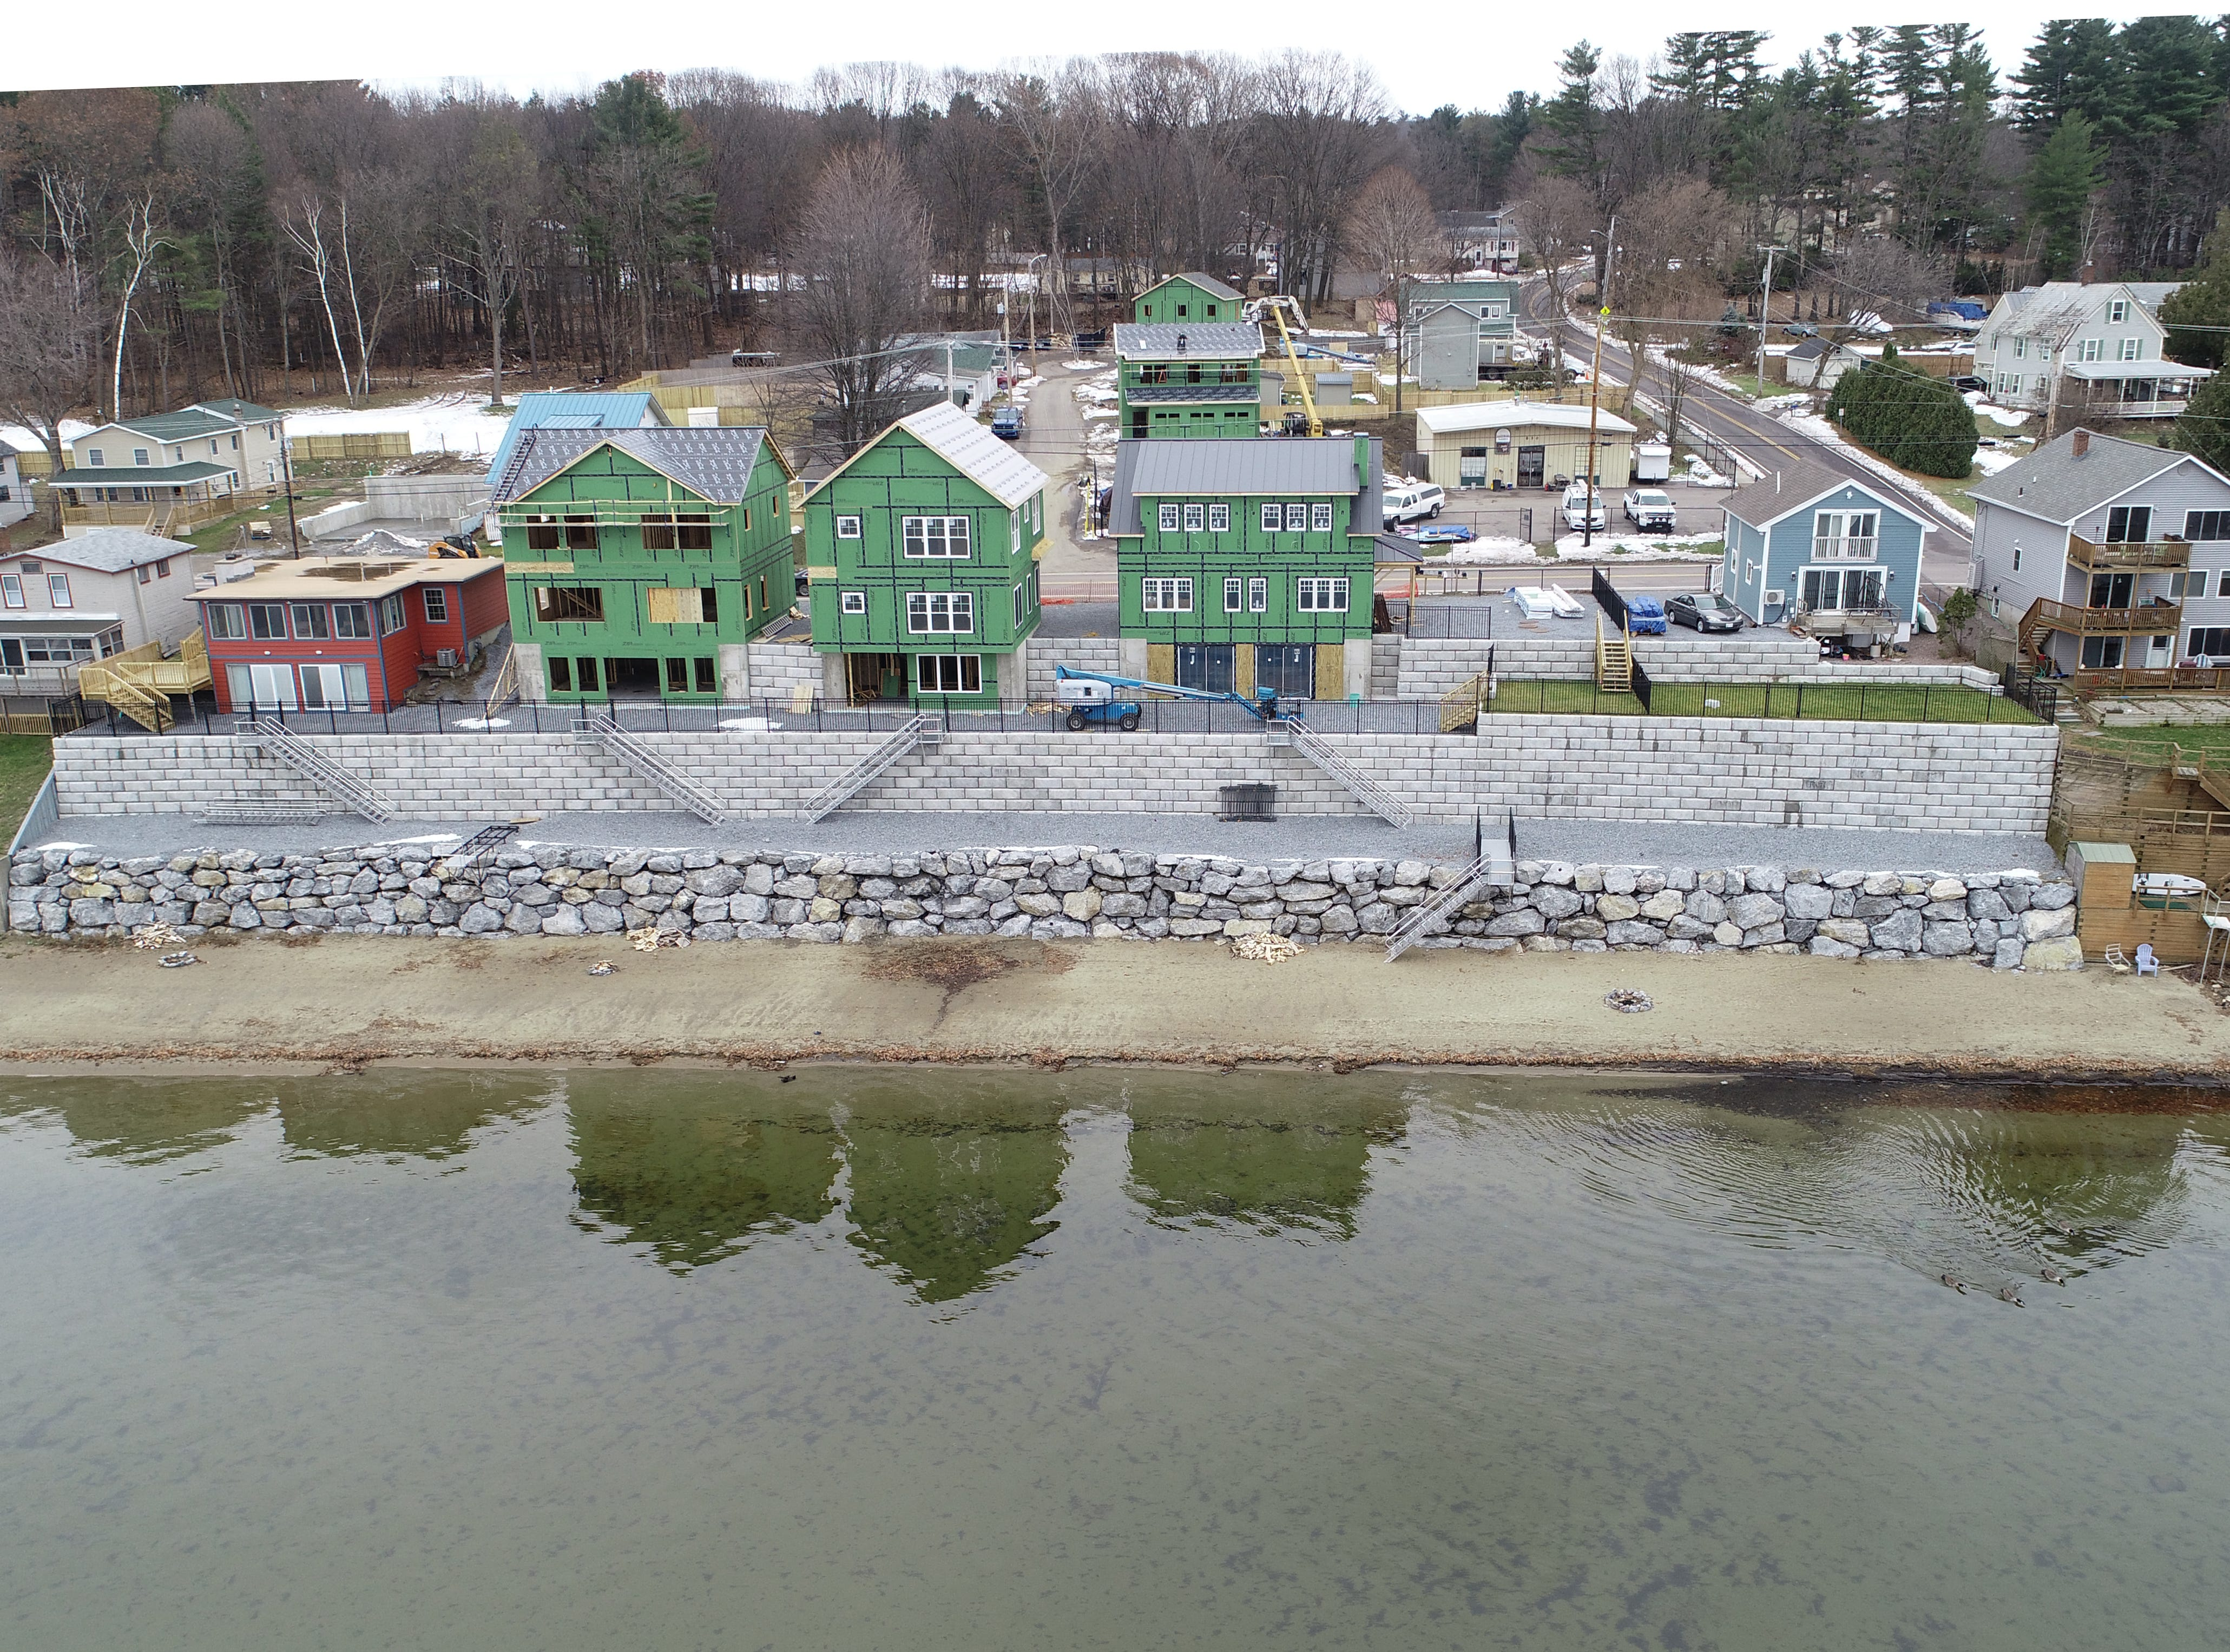 New homes (in green) are constructed along East Lakeshore Drive in Colchester, as viewed from a drone above Malletts Bay on Dec. 1, 2018.